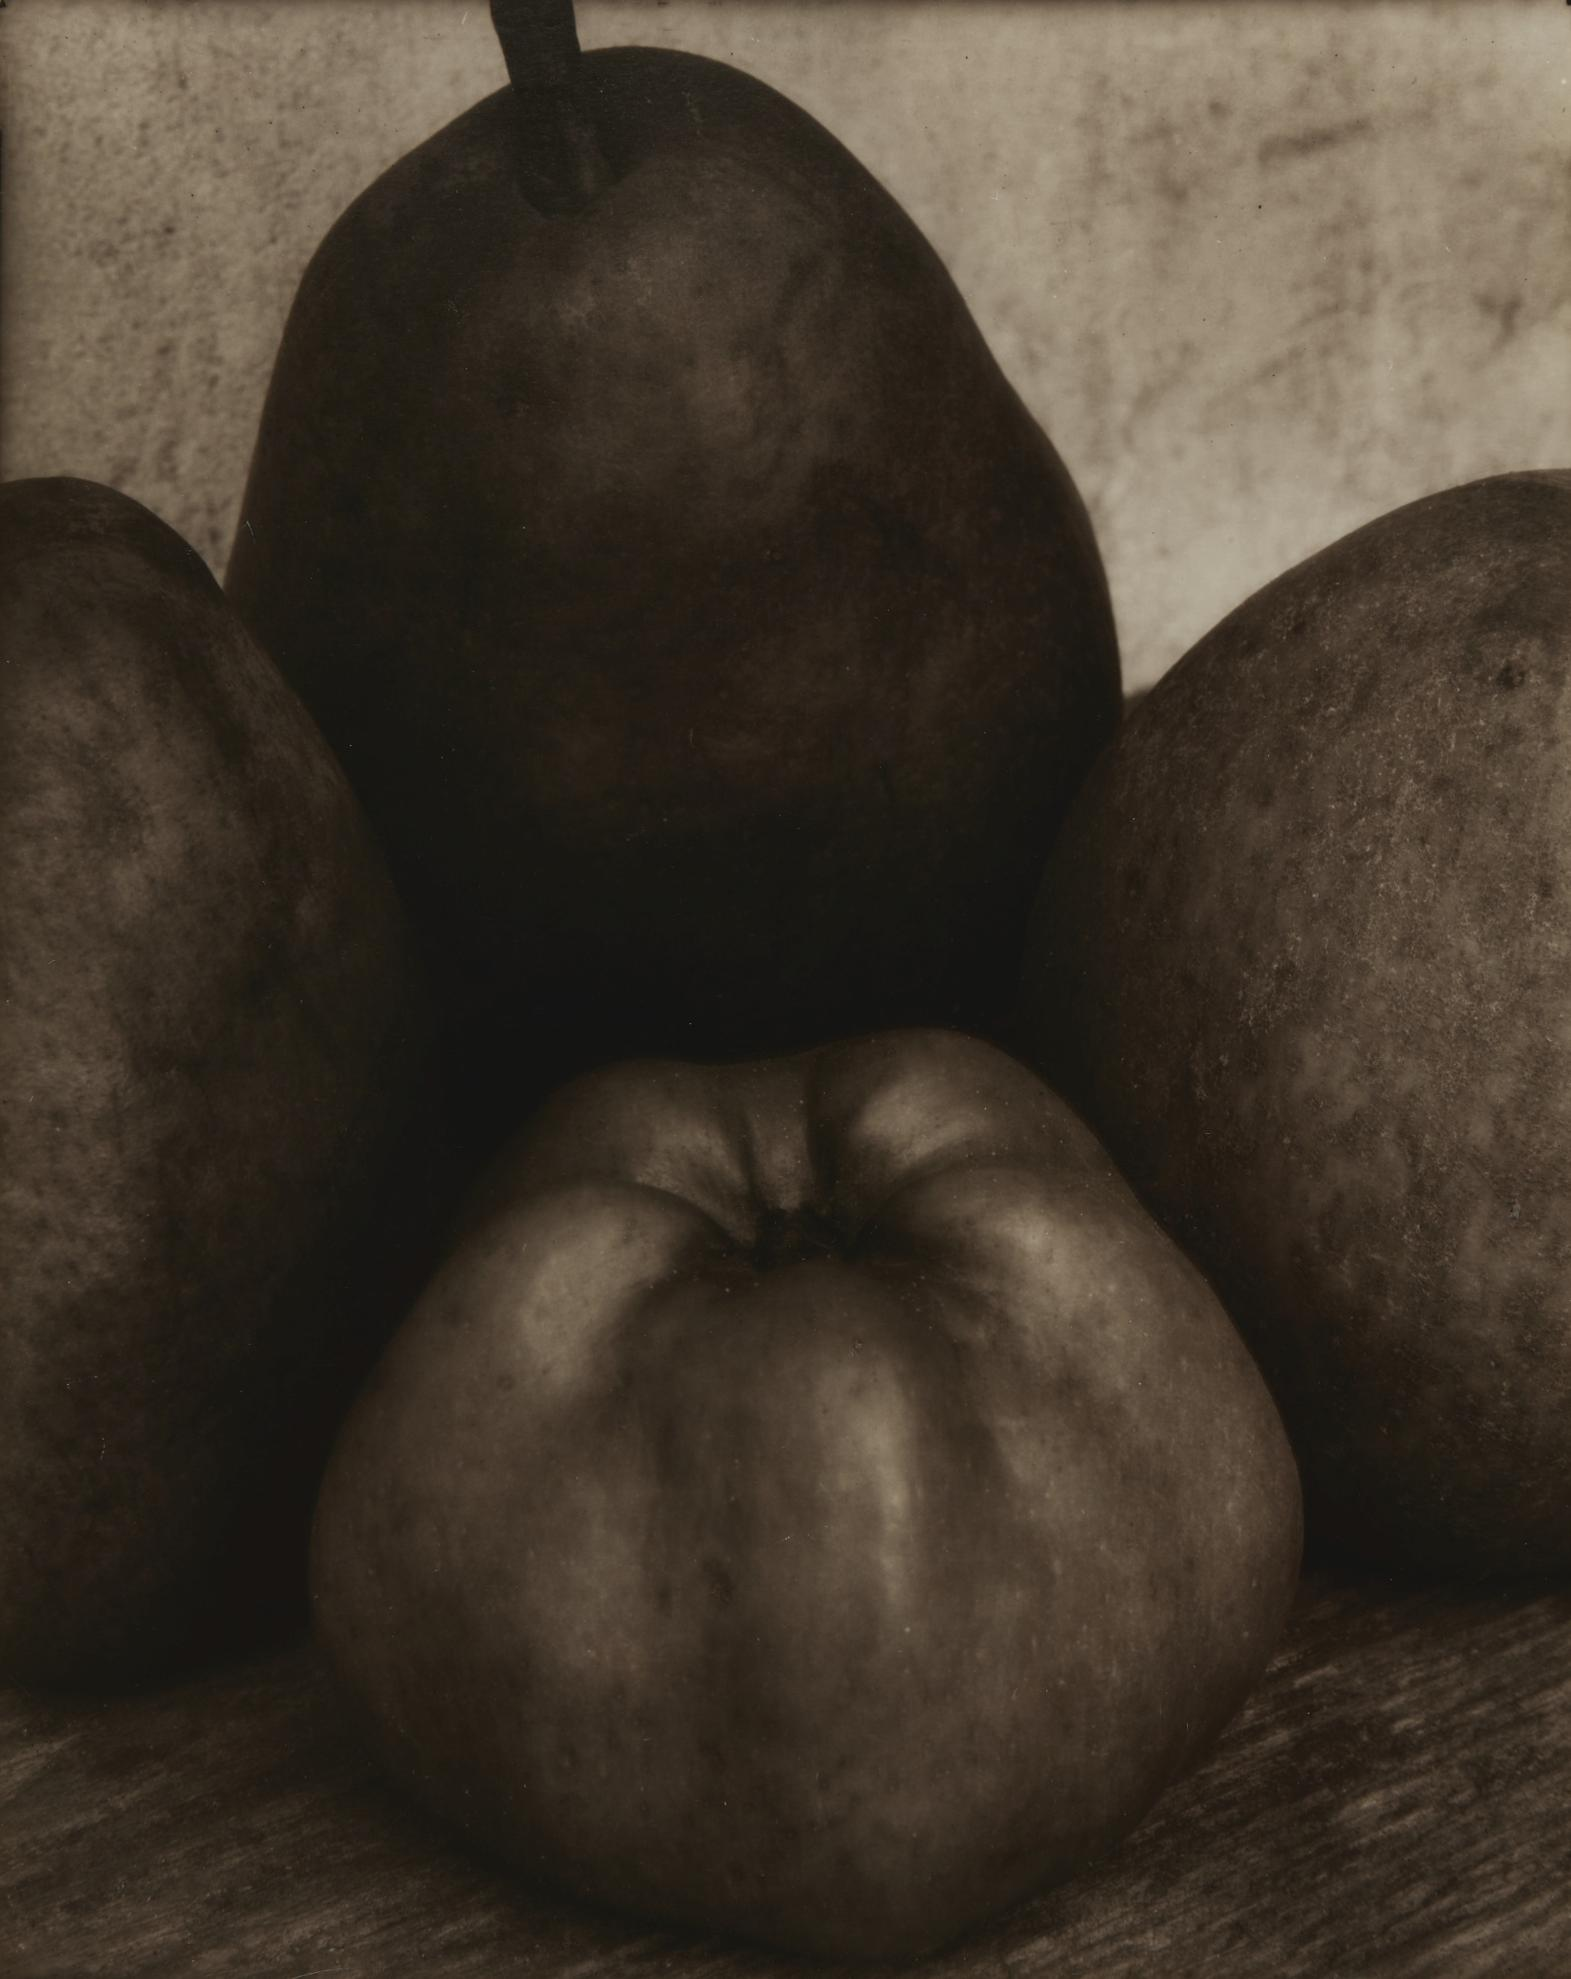 Edward Steichen-Three Pears And An Apple, France-1921